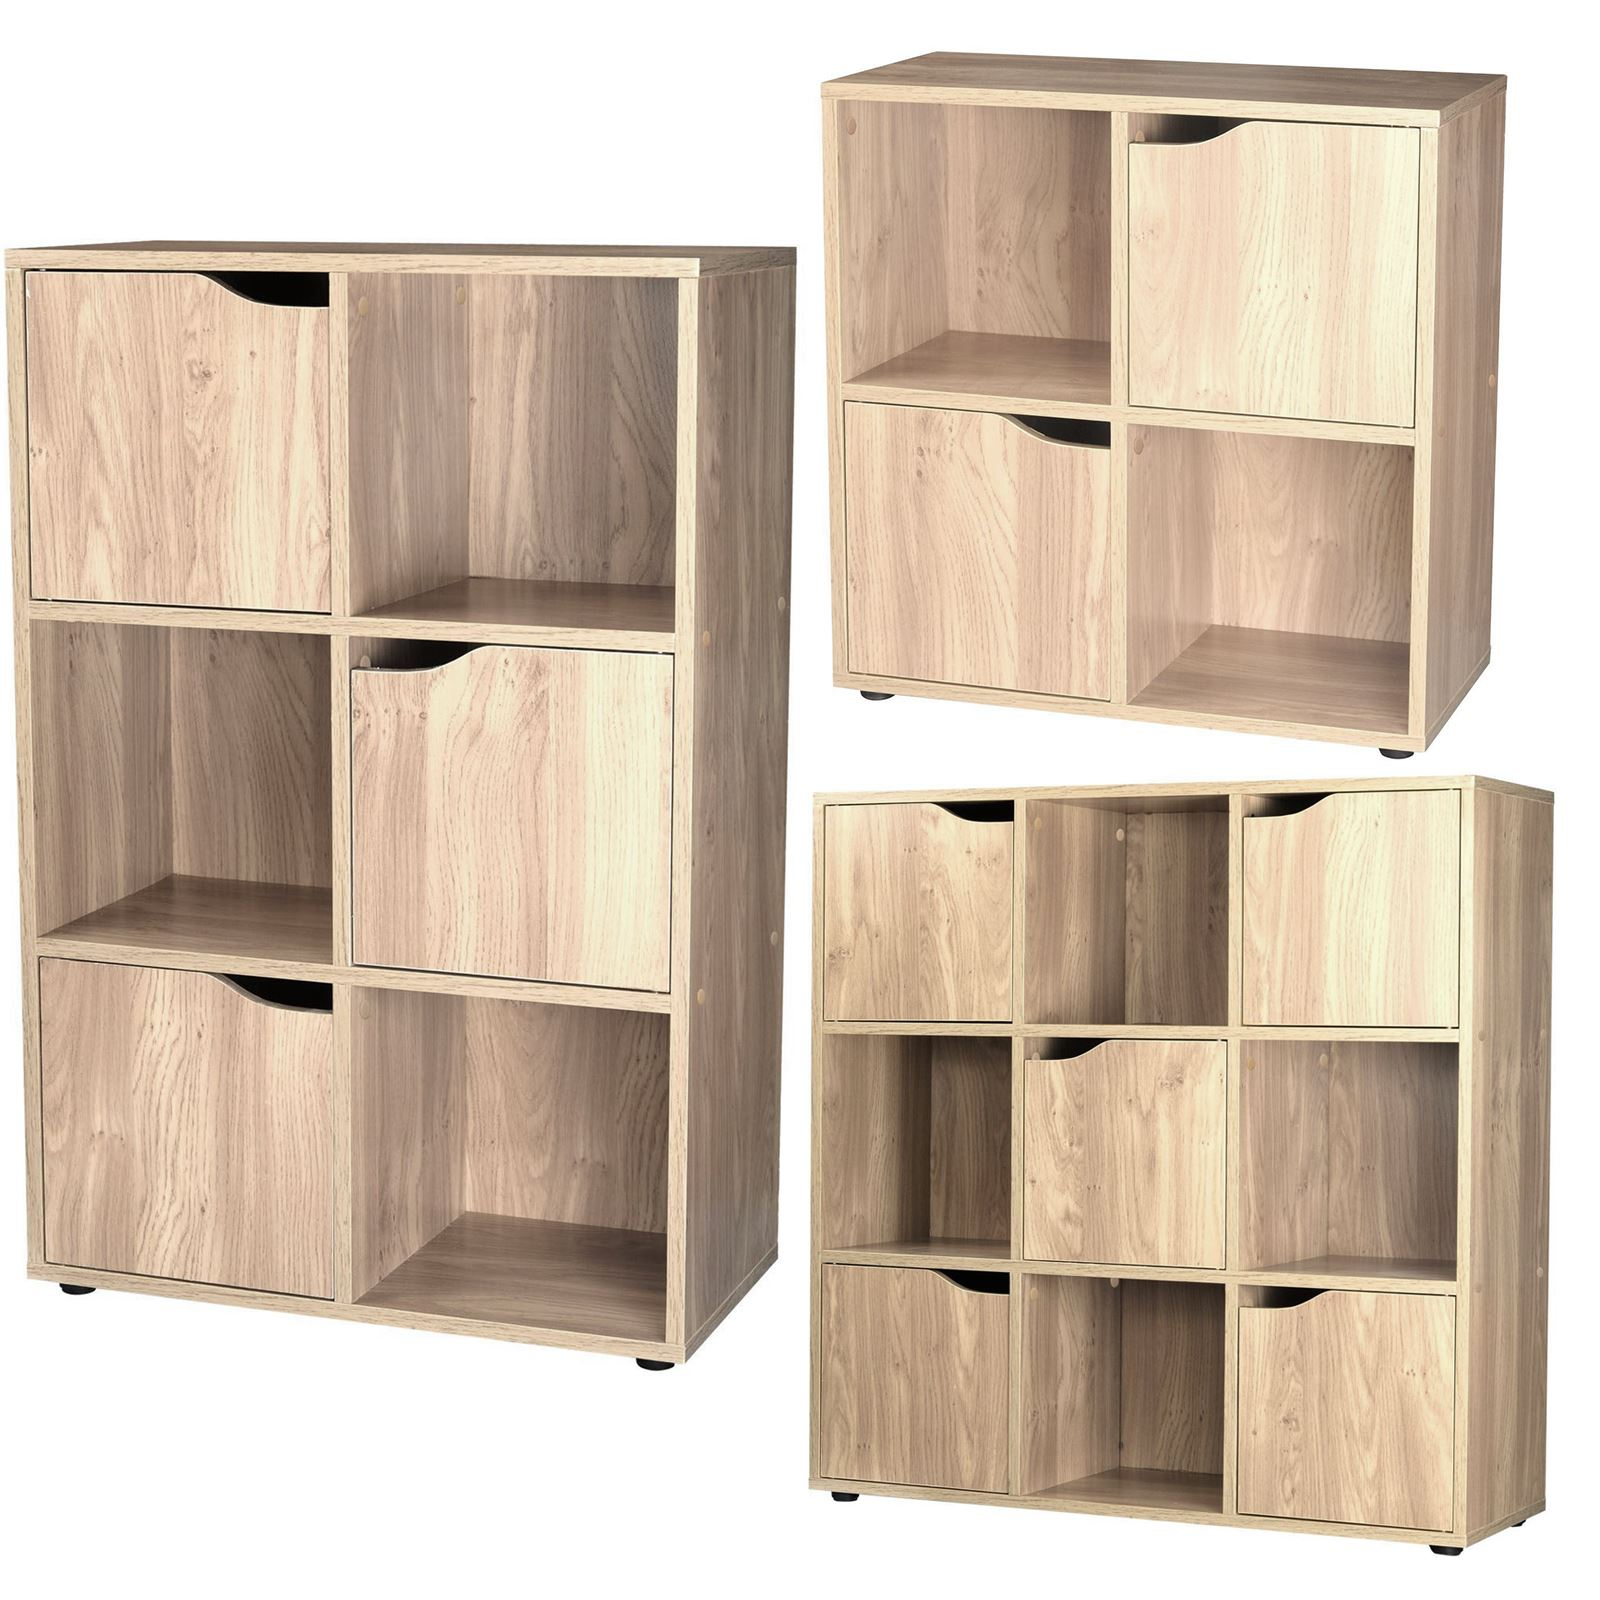 4 6 9 wooden cube storage unit display shelves cupboard. Black Bedroom Furniture Sets. Home Design Ideas